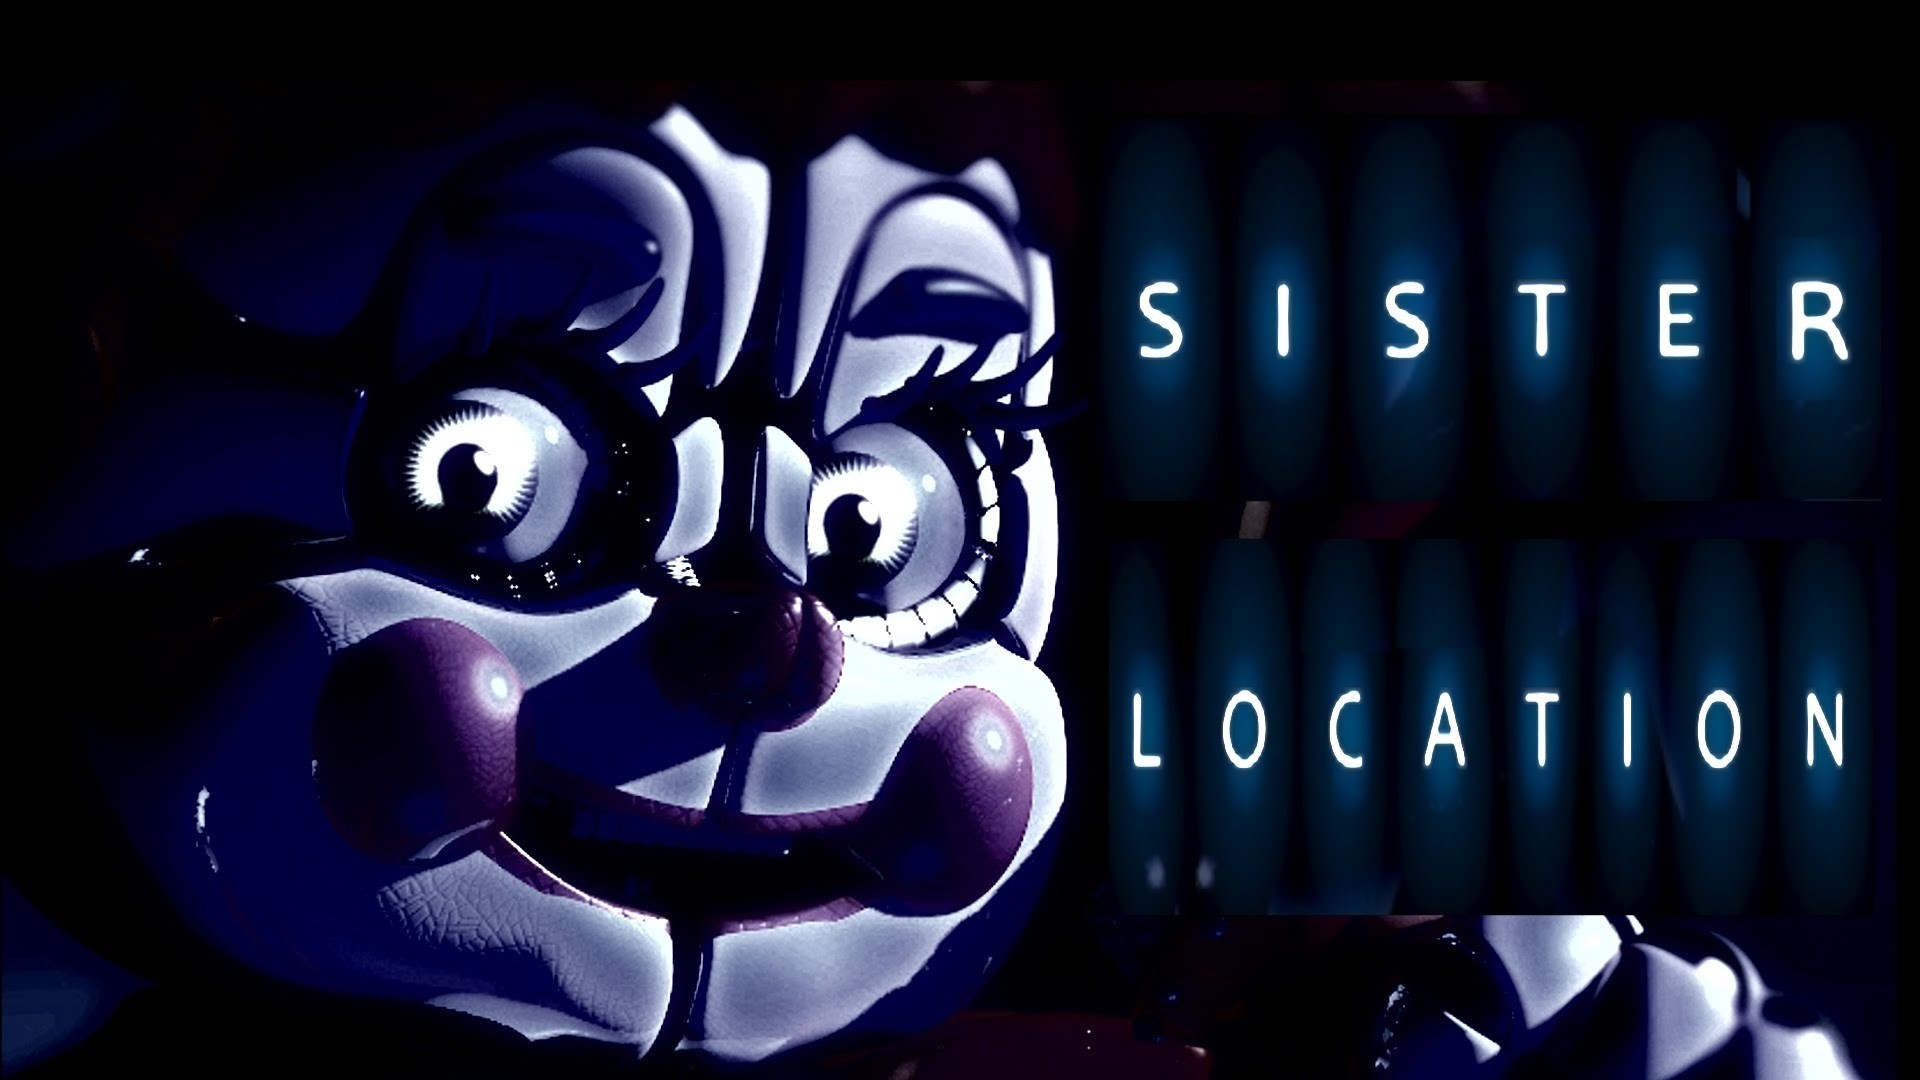 Five Nights at Freddy's Sister Location TEASER TRAILER